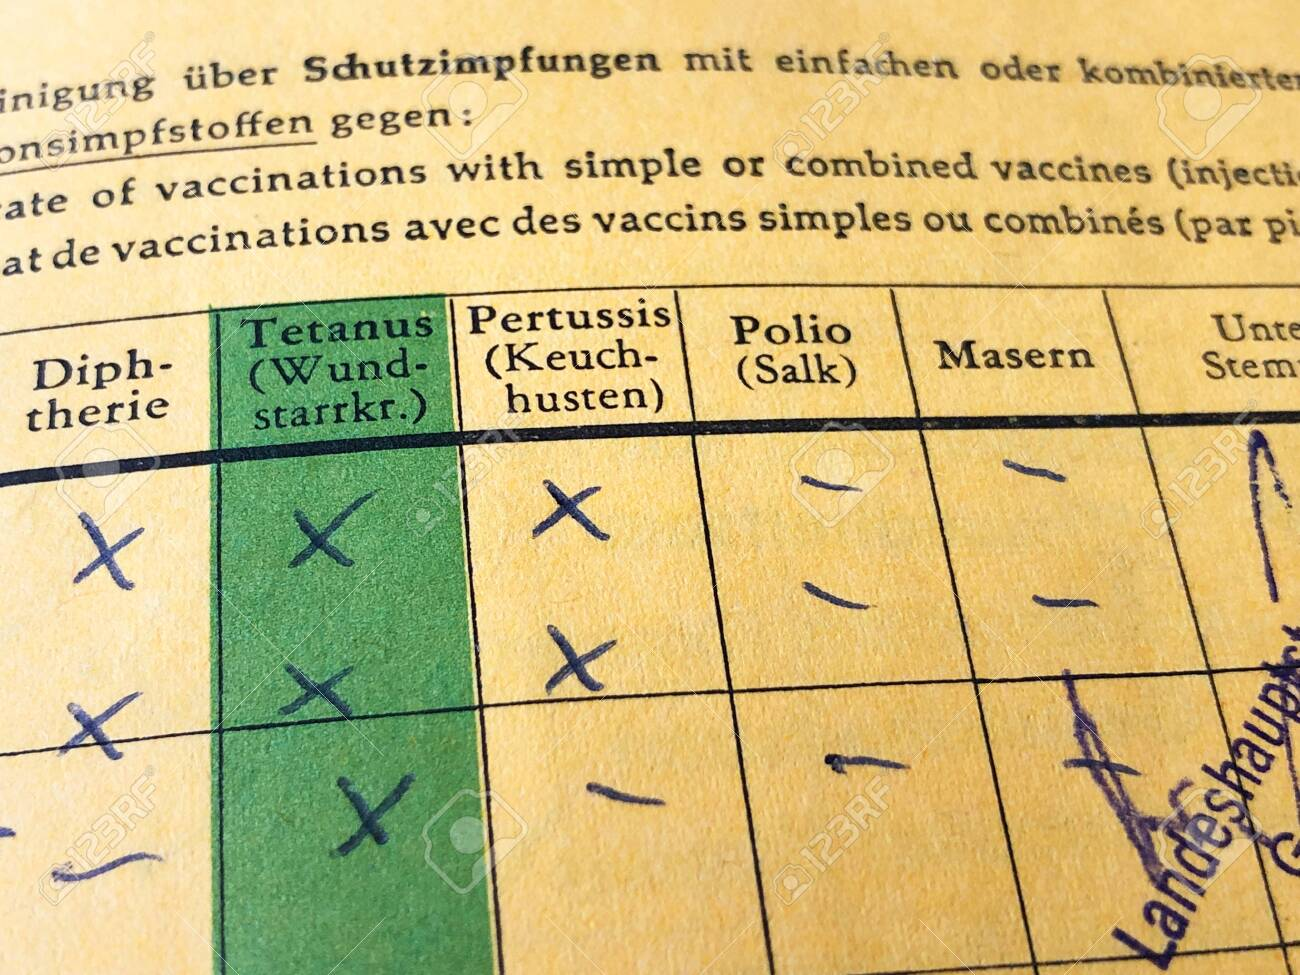 German international certificate of vaccination with missing records for measles and polio - 122167754